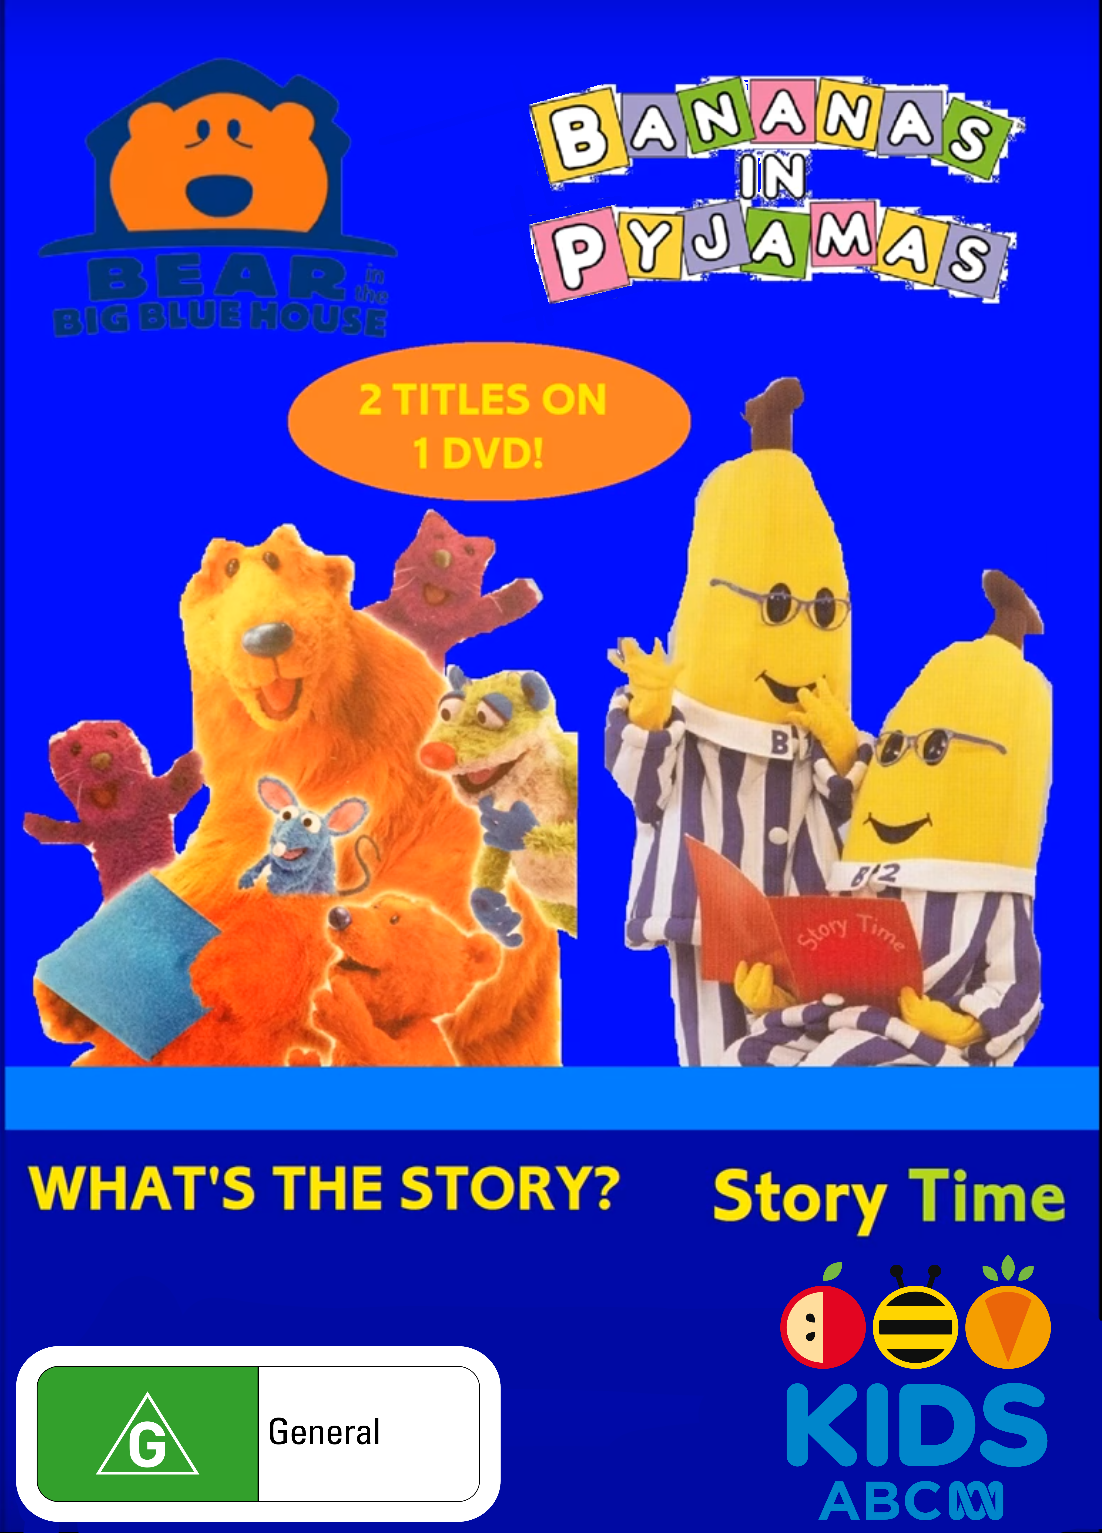 BitBBH and Bananas in Pyjamas - What's the Story and Story Time 2018 (re-release)